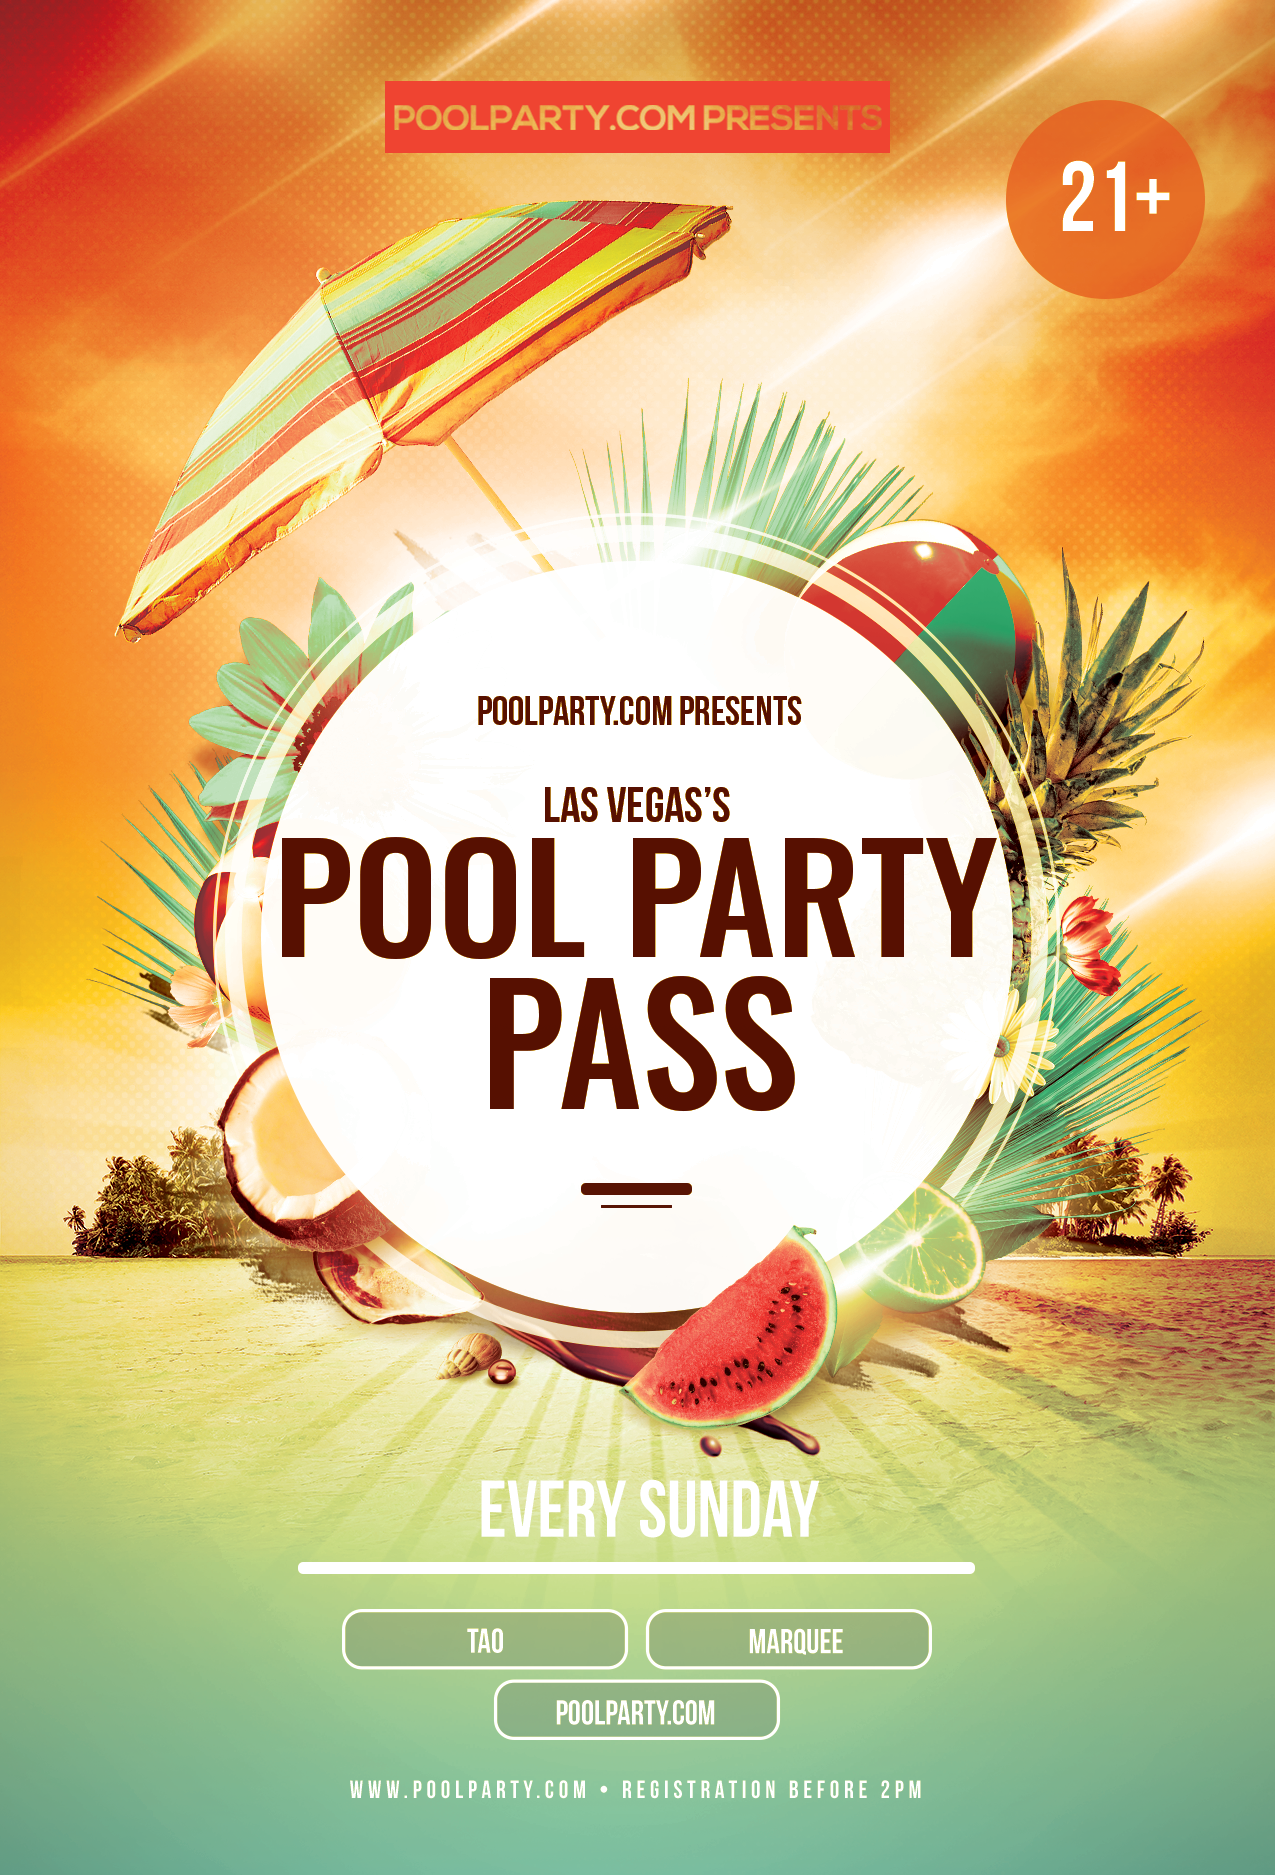 Sunday's Pool Party Pass (June 14th 2020)